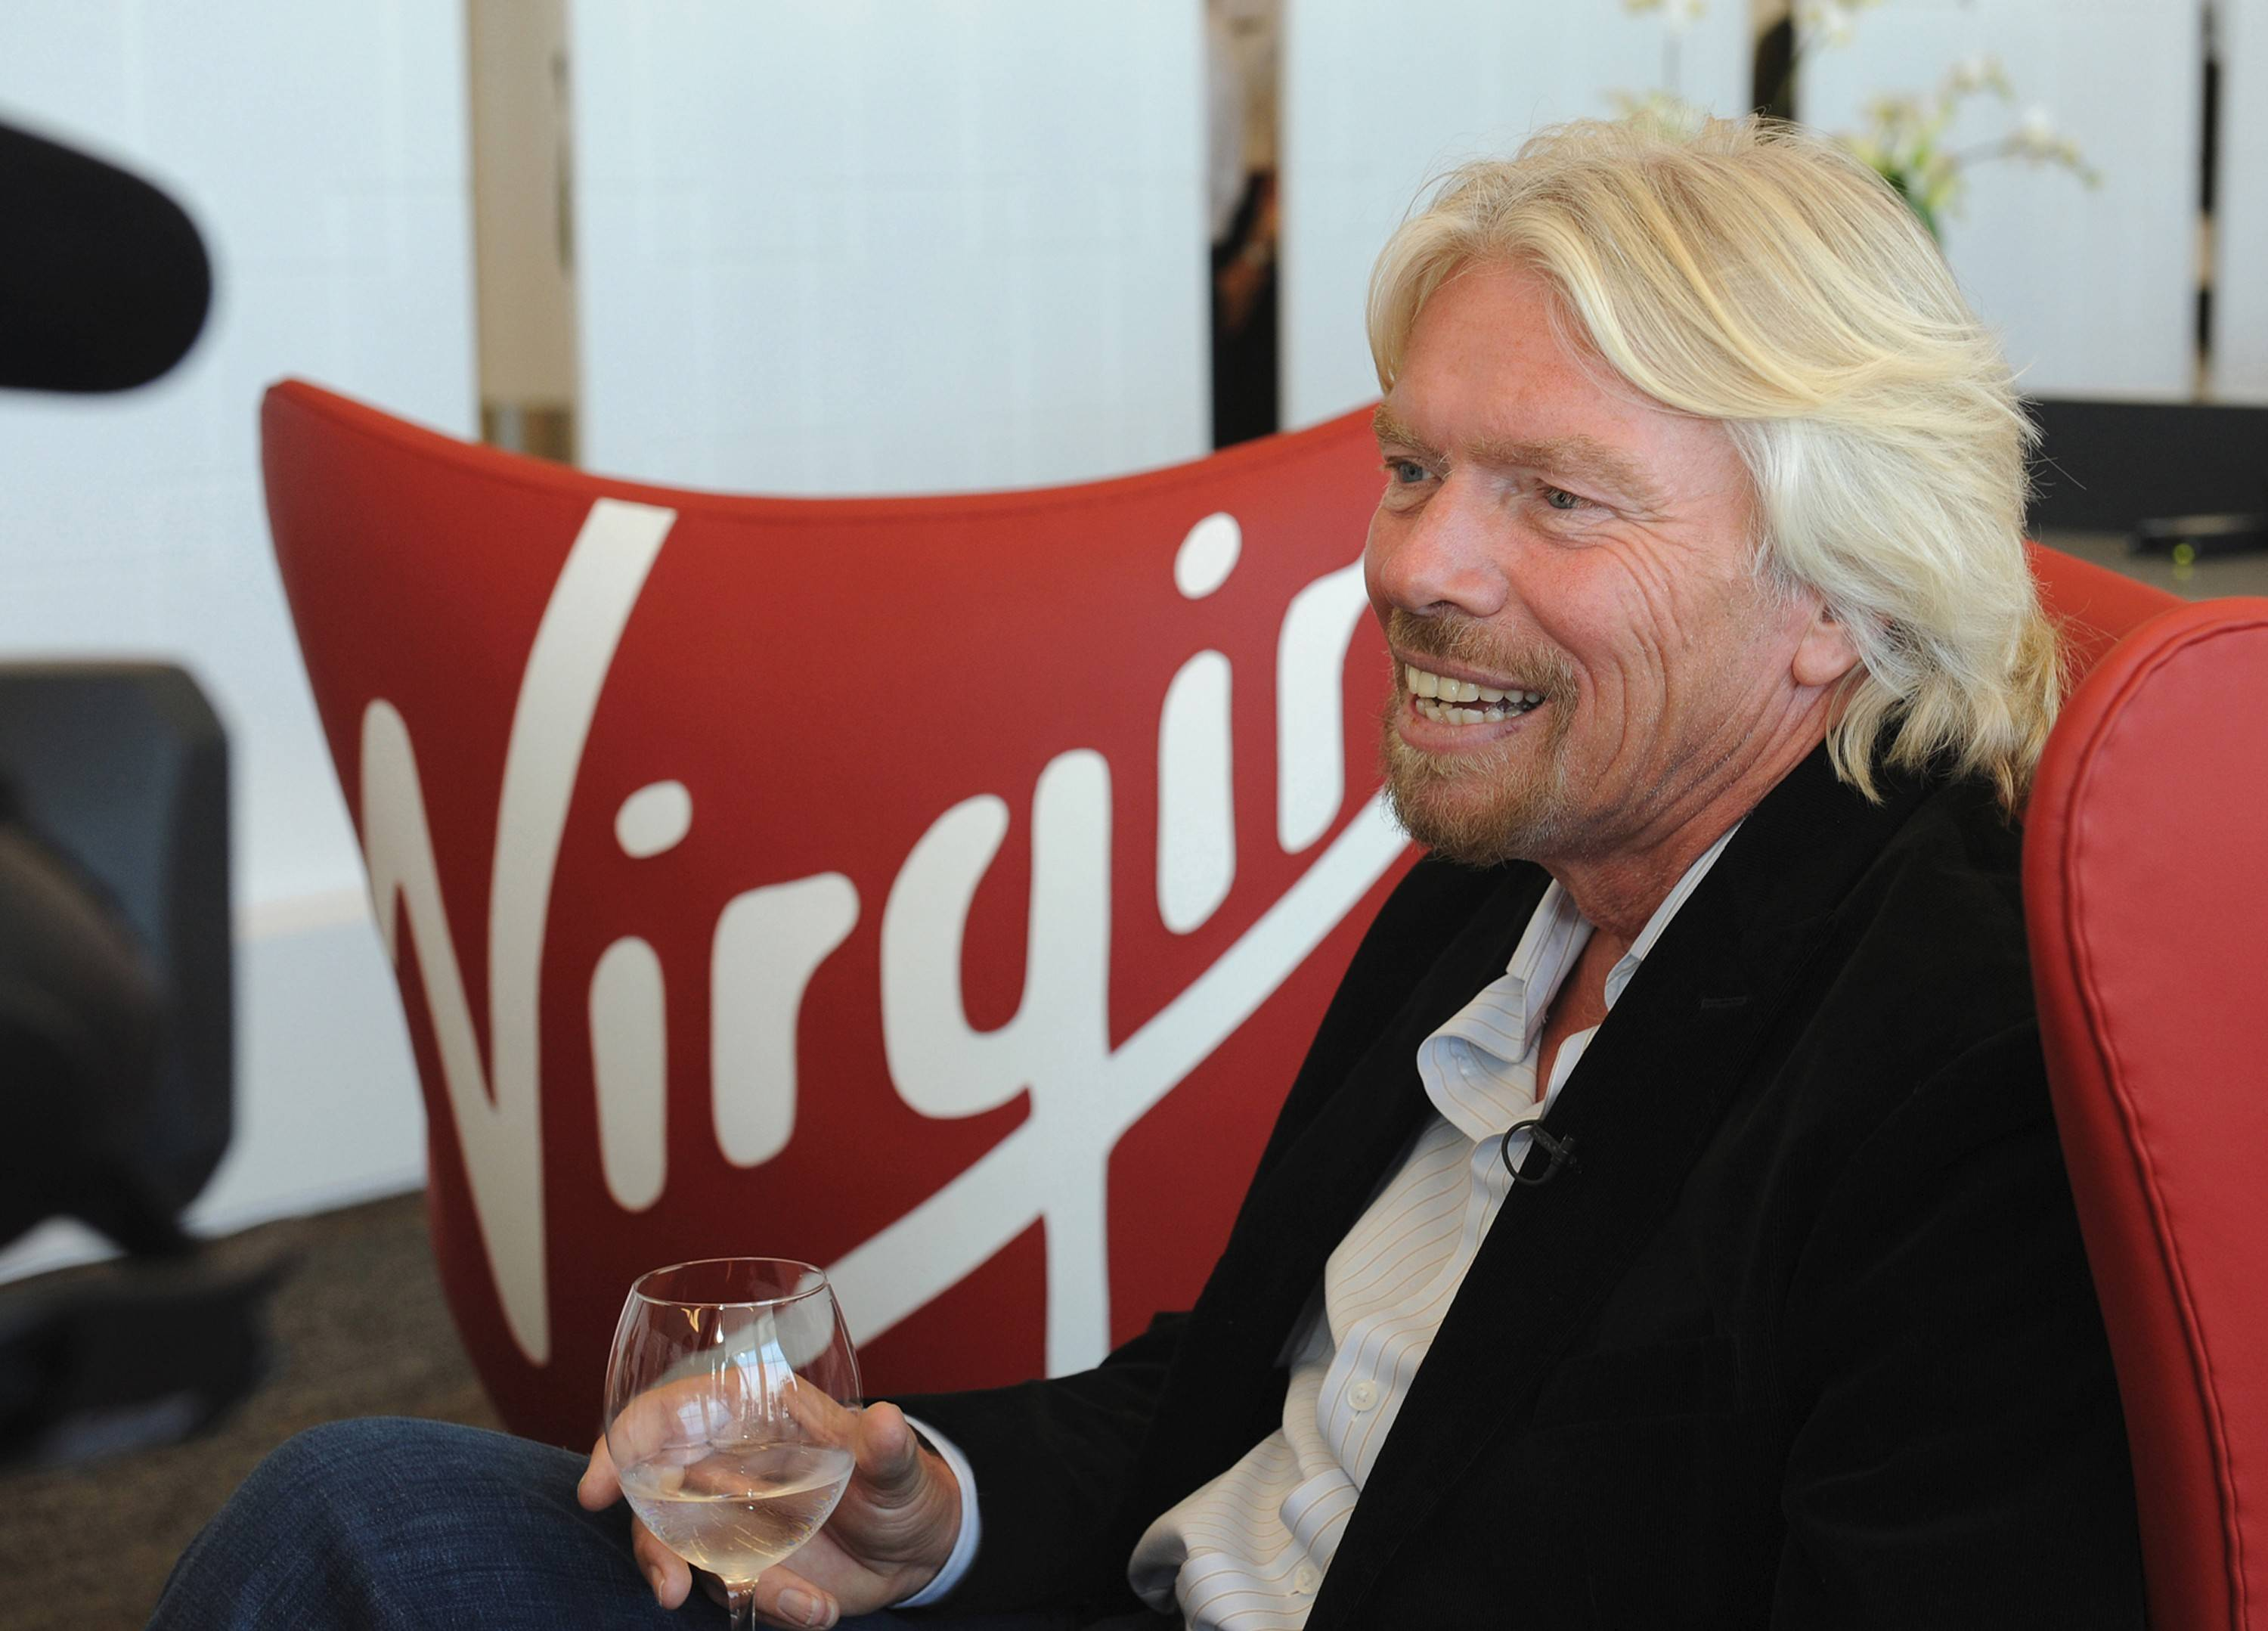 Richard Branson said almost 800 would-be space tourists signed up for $250,000 flights with his Virgin Galactic venture have been understanding about glitches that caused commercial services to be delayed until 2015.